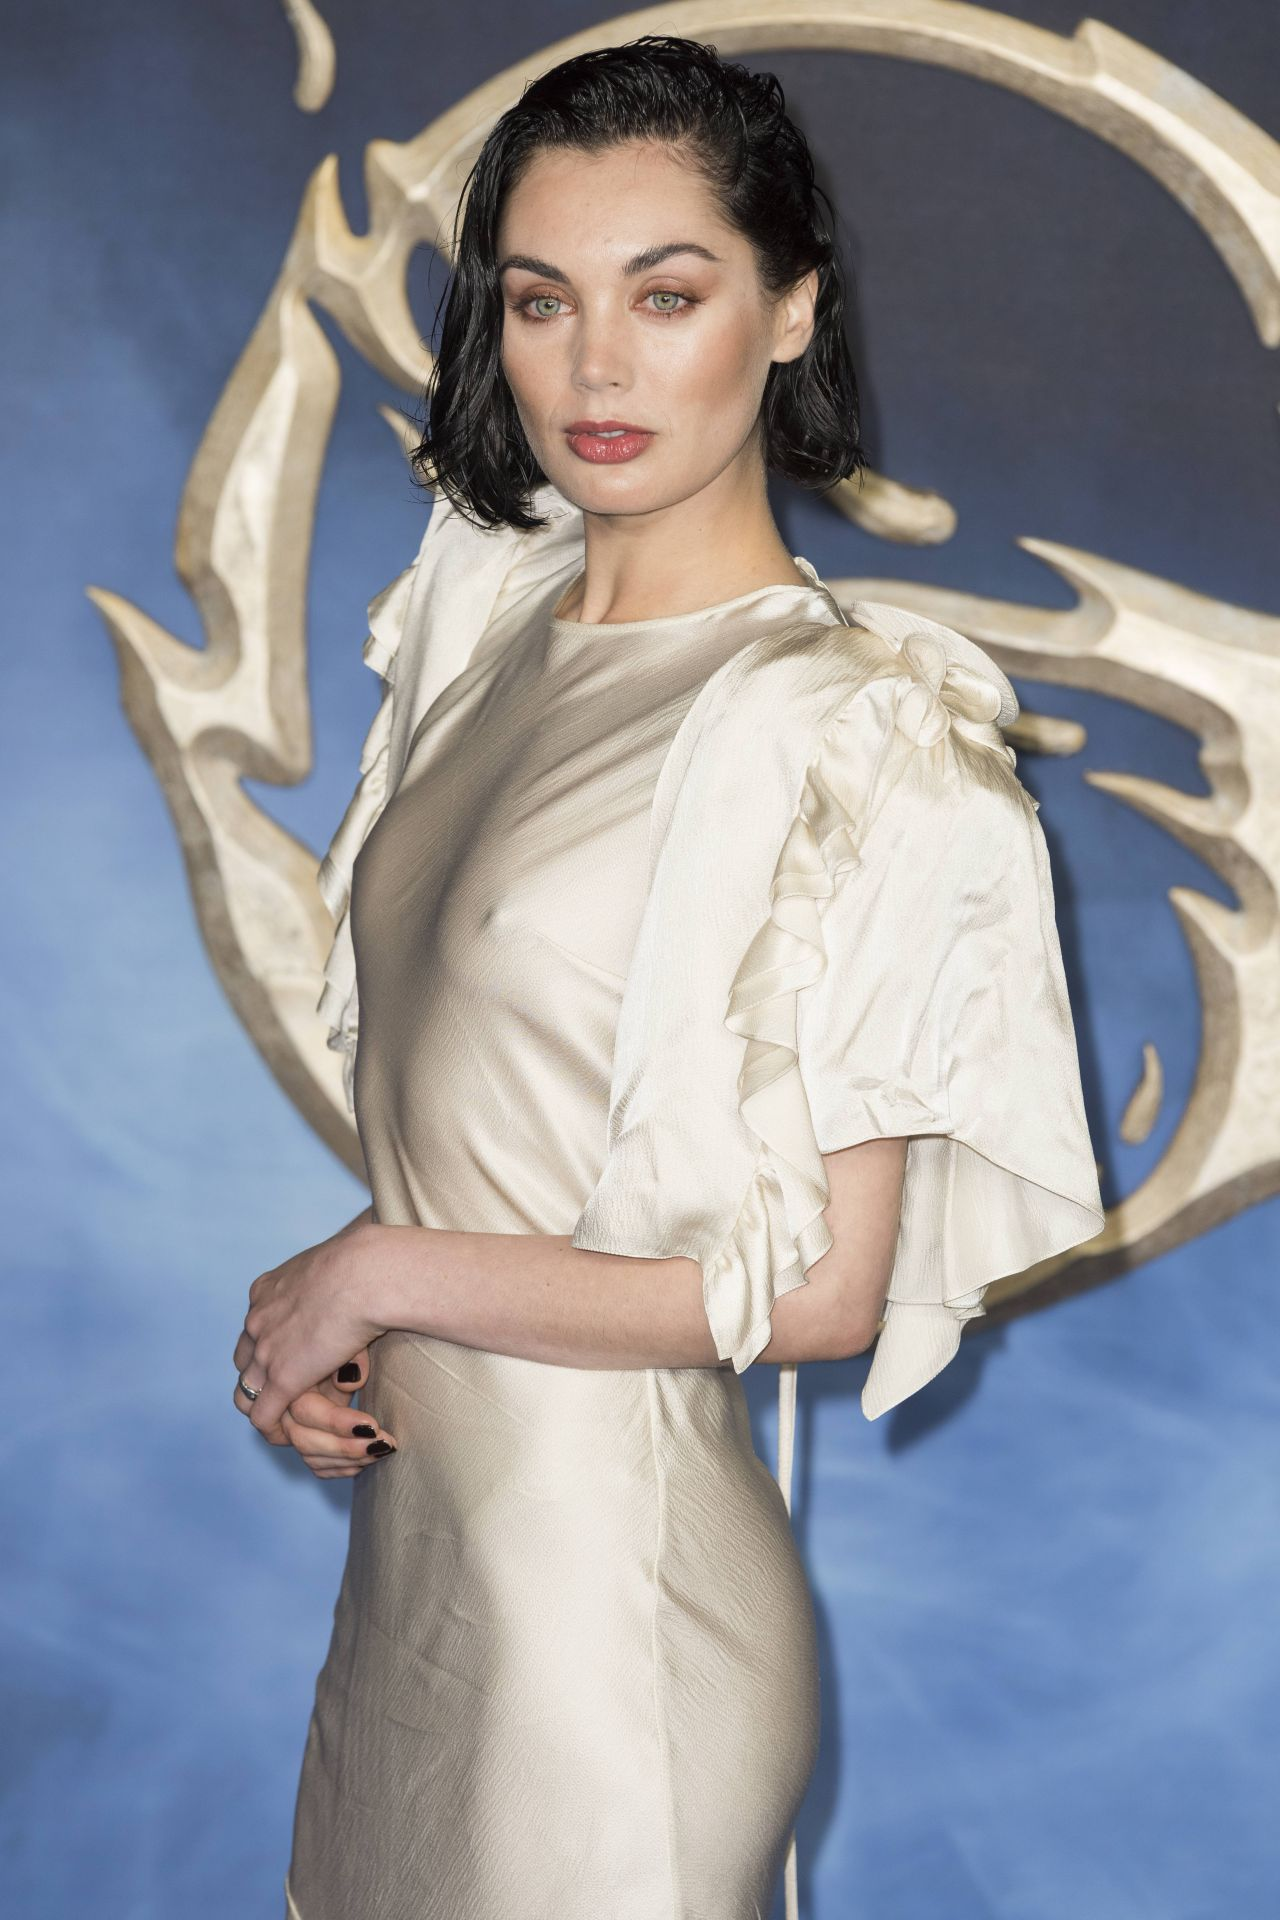 Poppy Corby Tuech Fantastic Beasts The Crimes Of